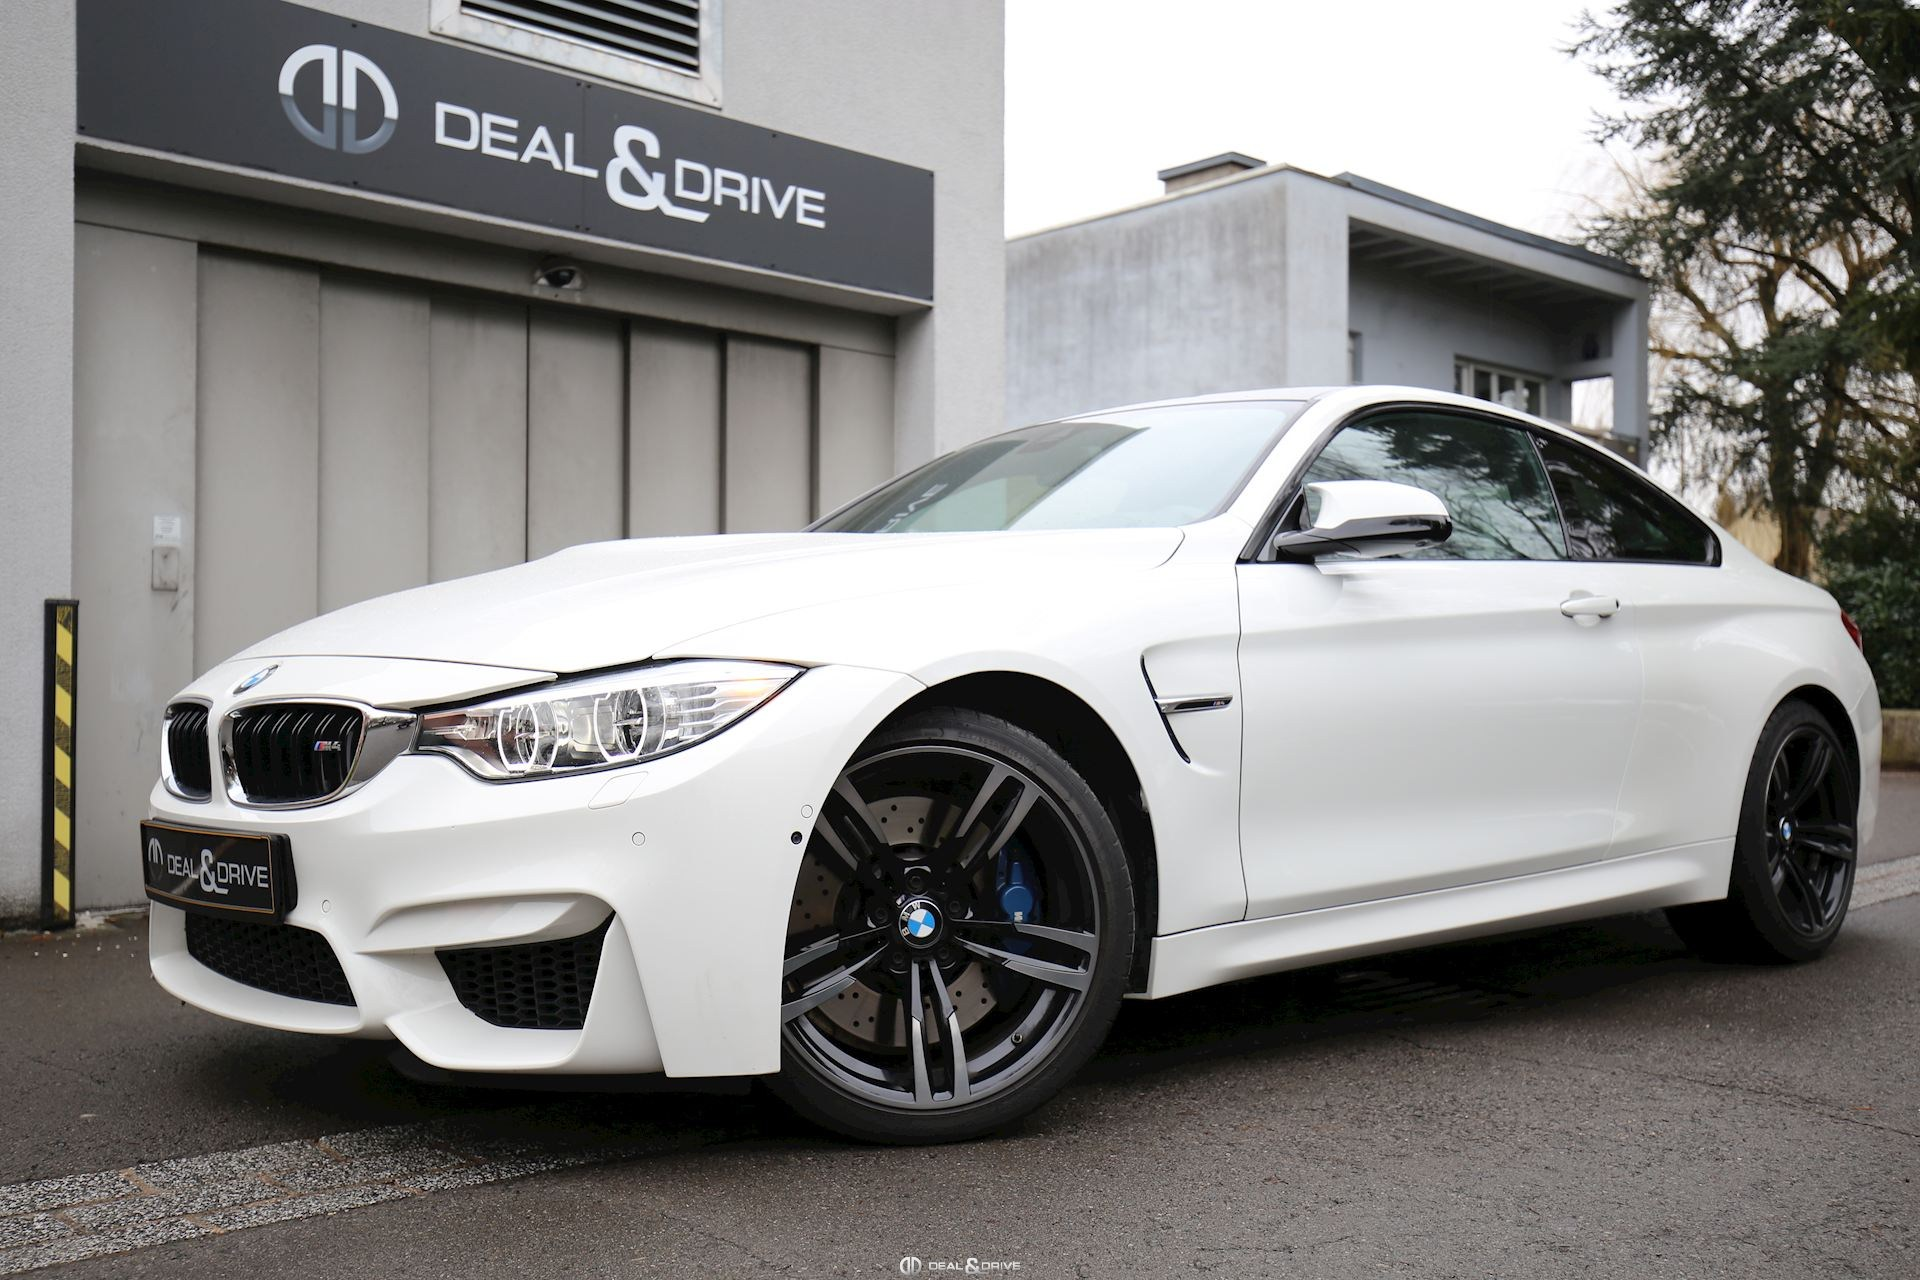 BMW M4 3 0 Coupé DKG Deal & Drive